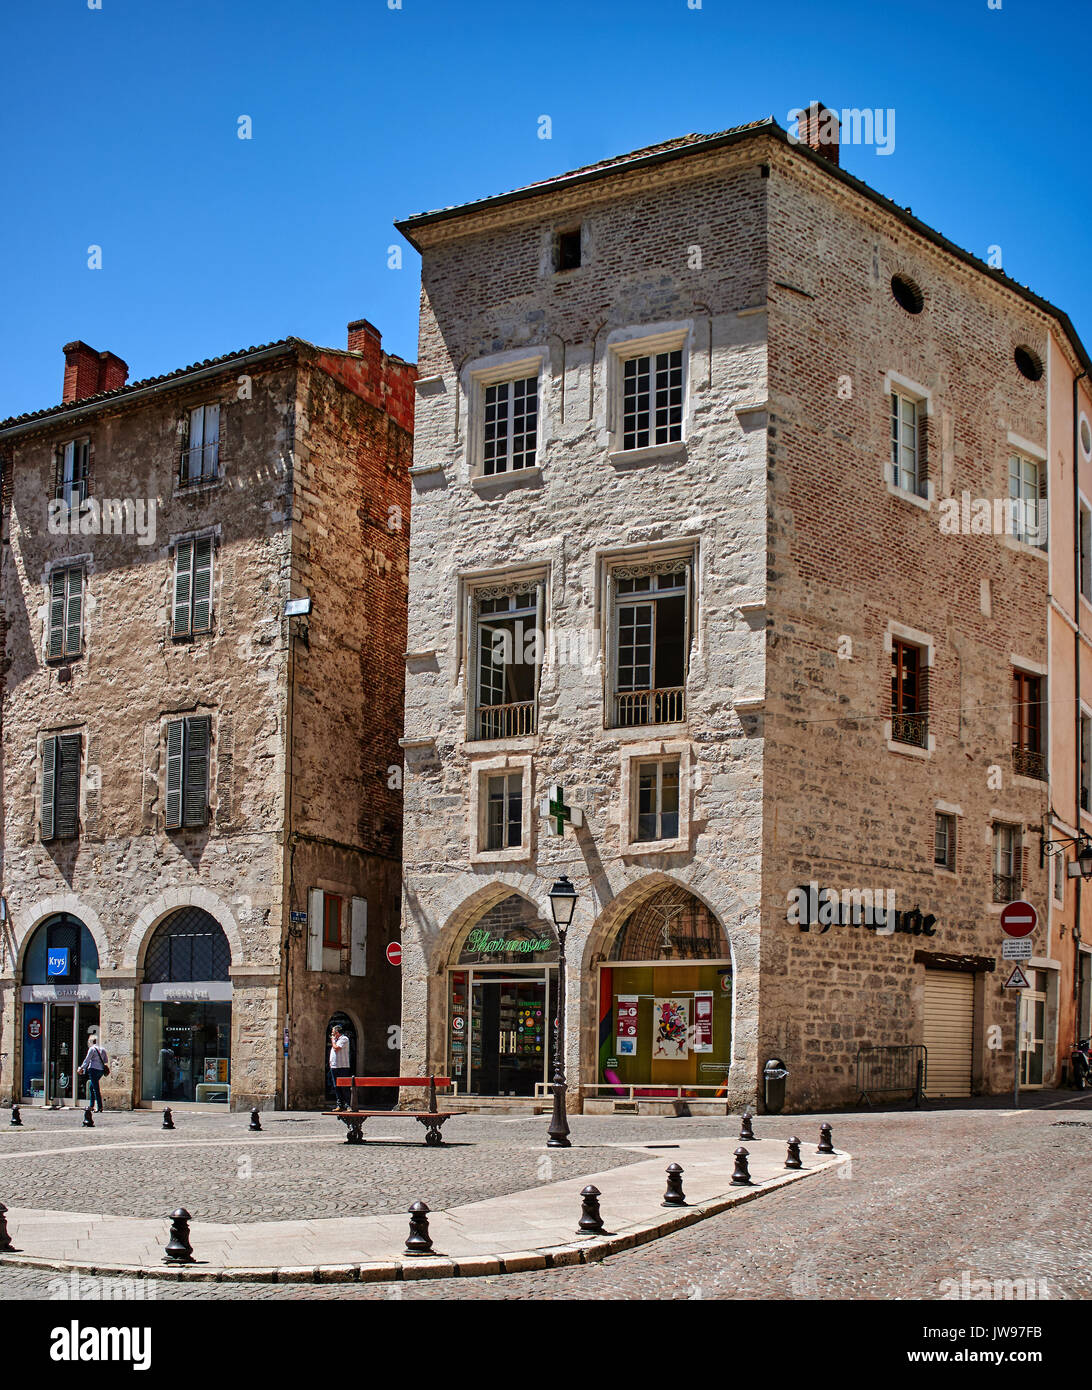 Europe, France, Occitanie, Lot, Cahors city, the old city, timber framed and brick buildings and outdoor shop in Stock Photo